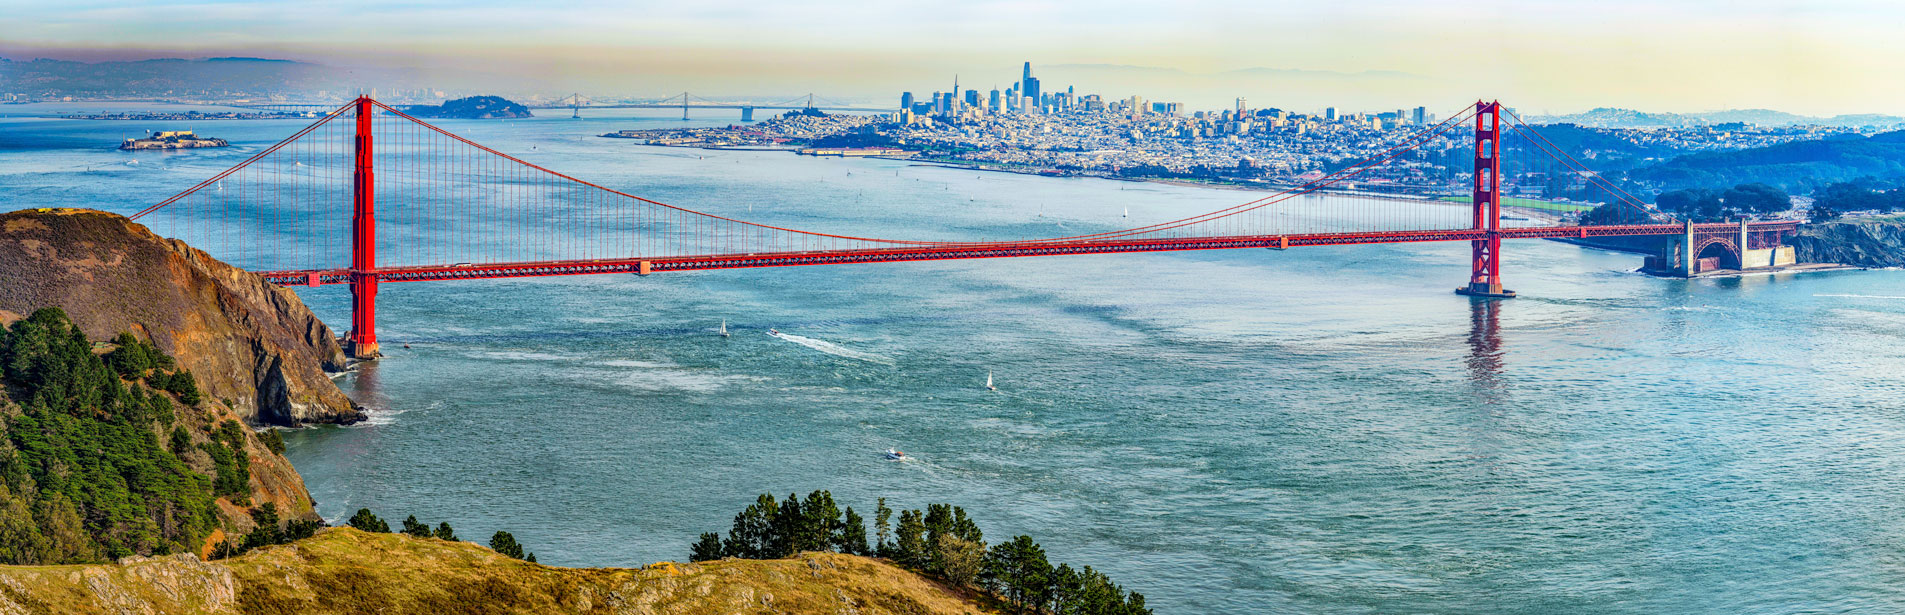 aerial image of the golden gate bridge and san francisco bay in the day time